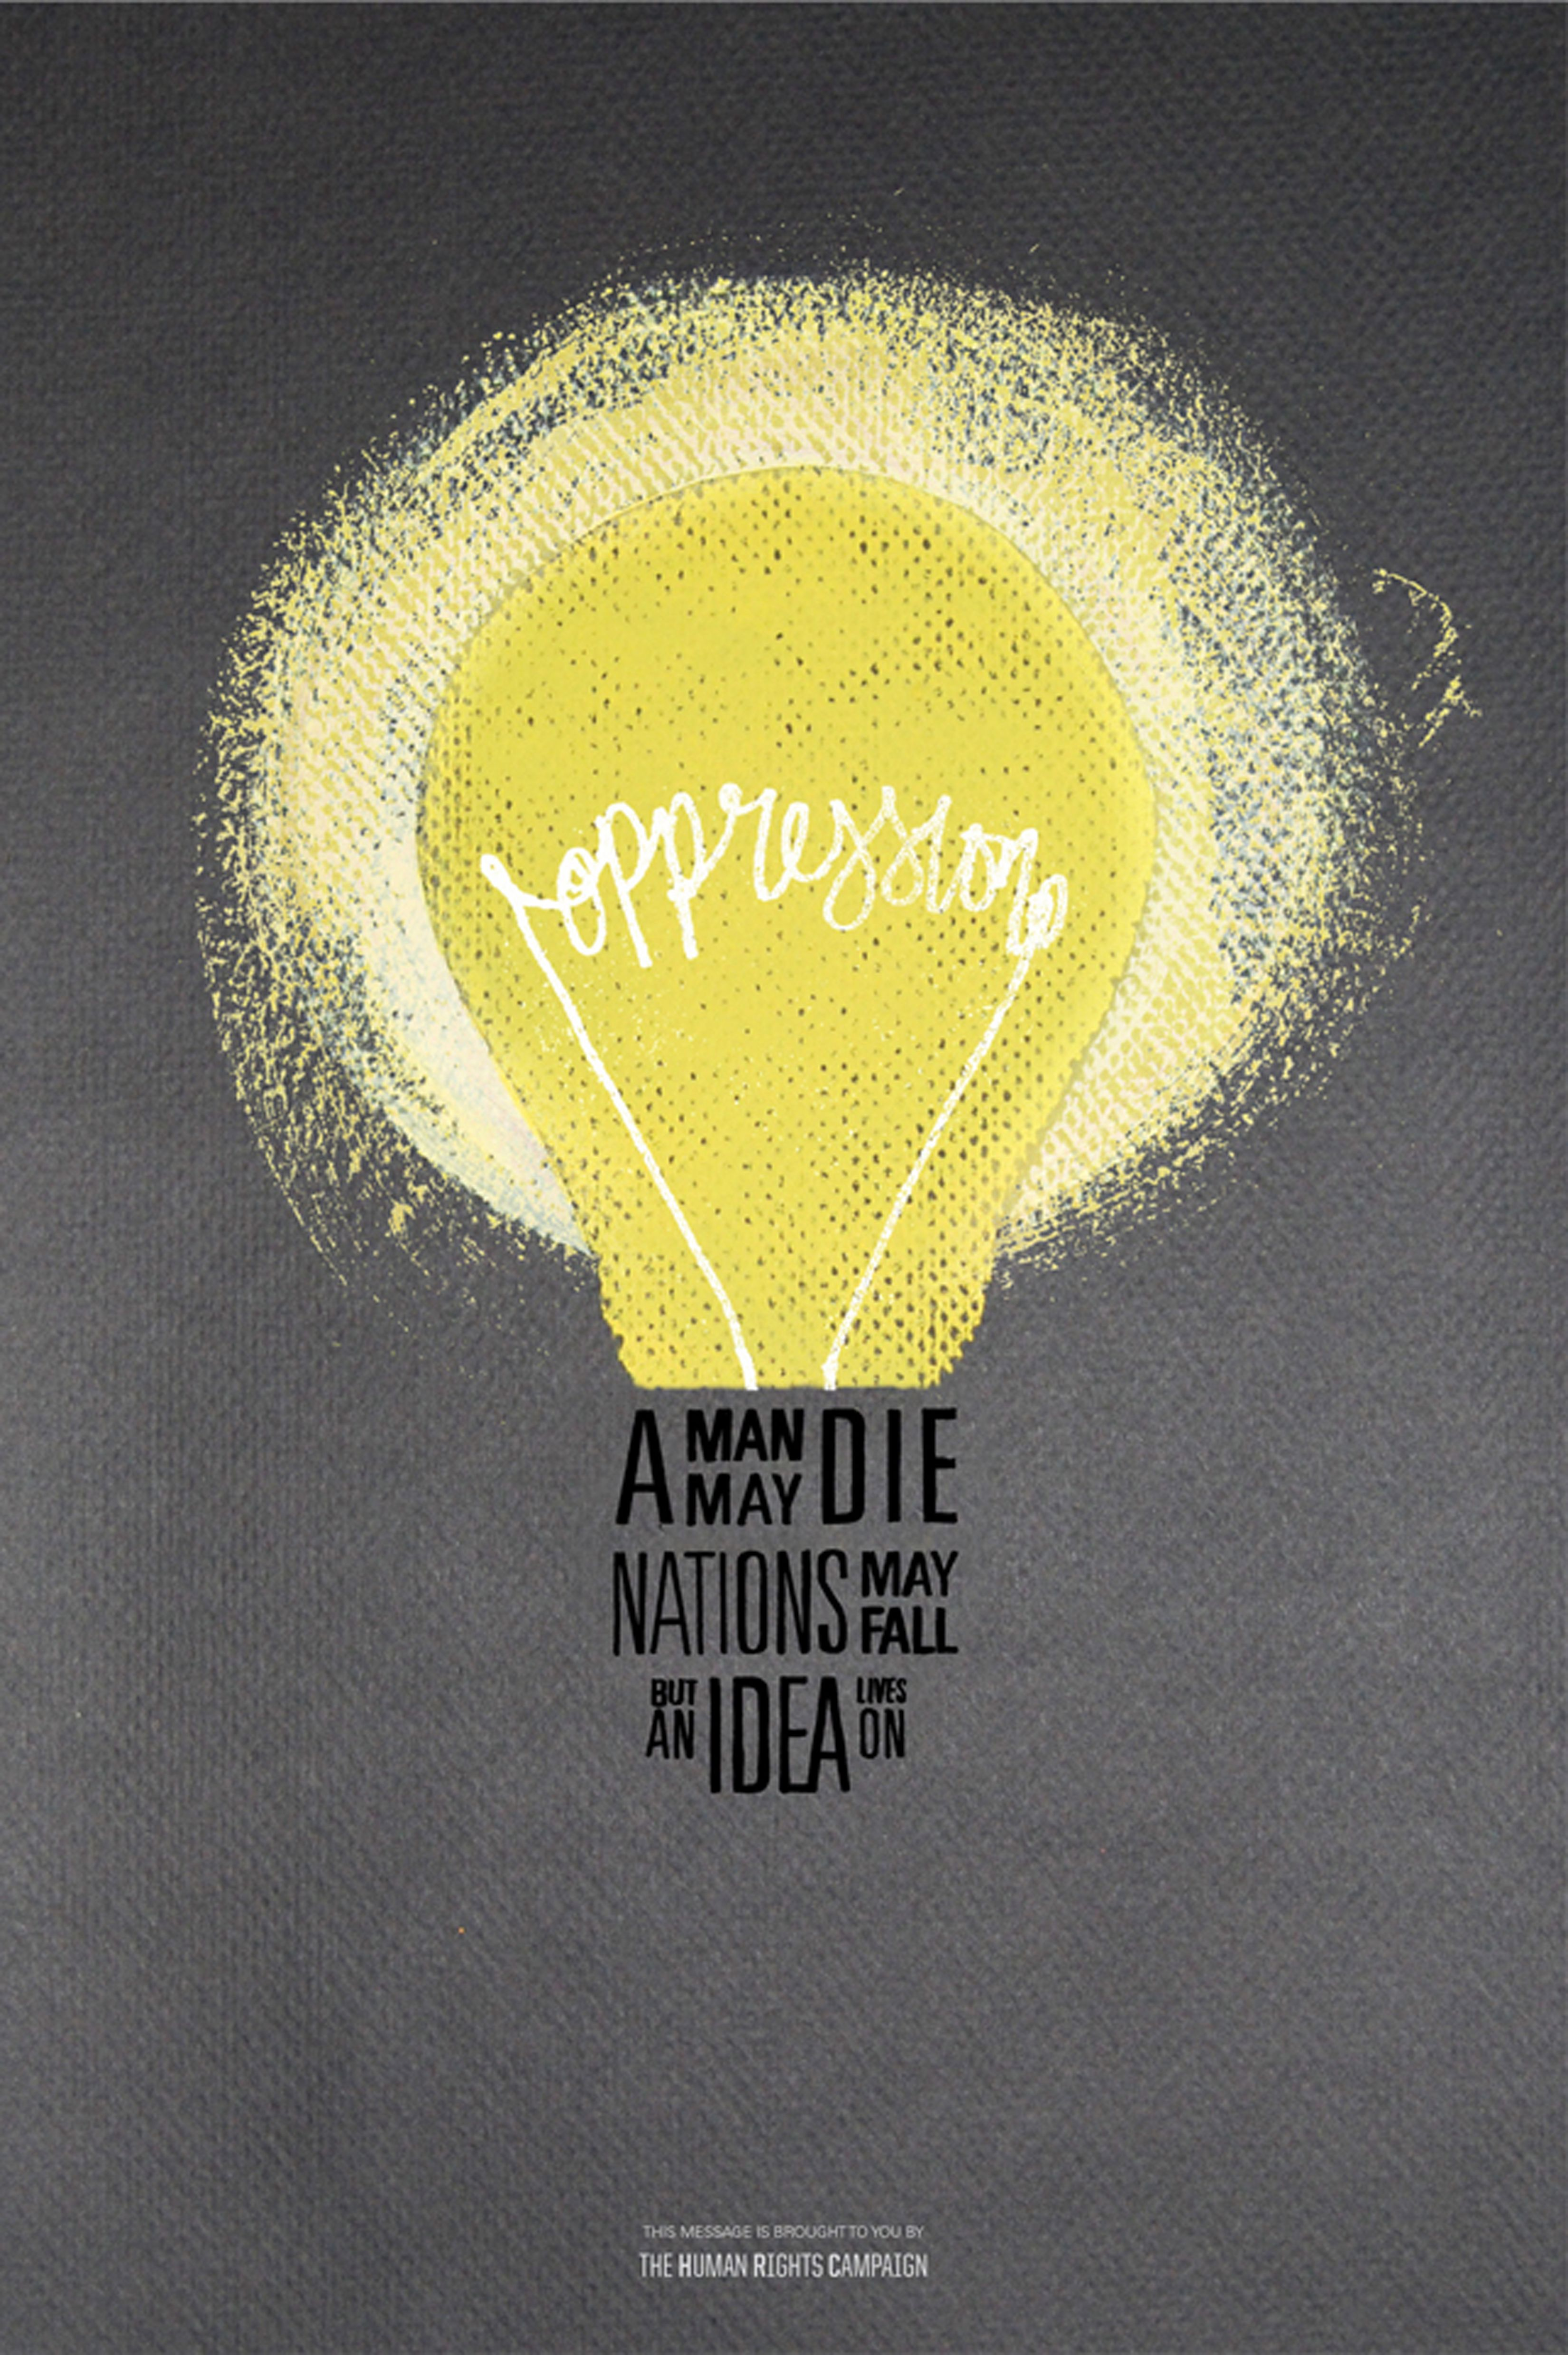 Quote poster design inspiration - Oppression Poster Lightbulb Different Quotesgraphic Design Inspirationoffice